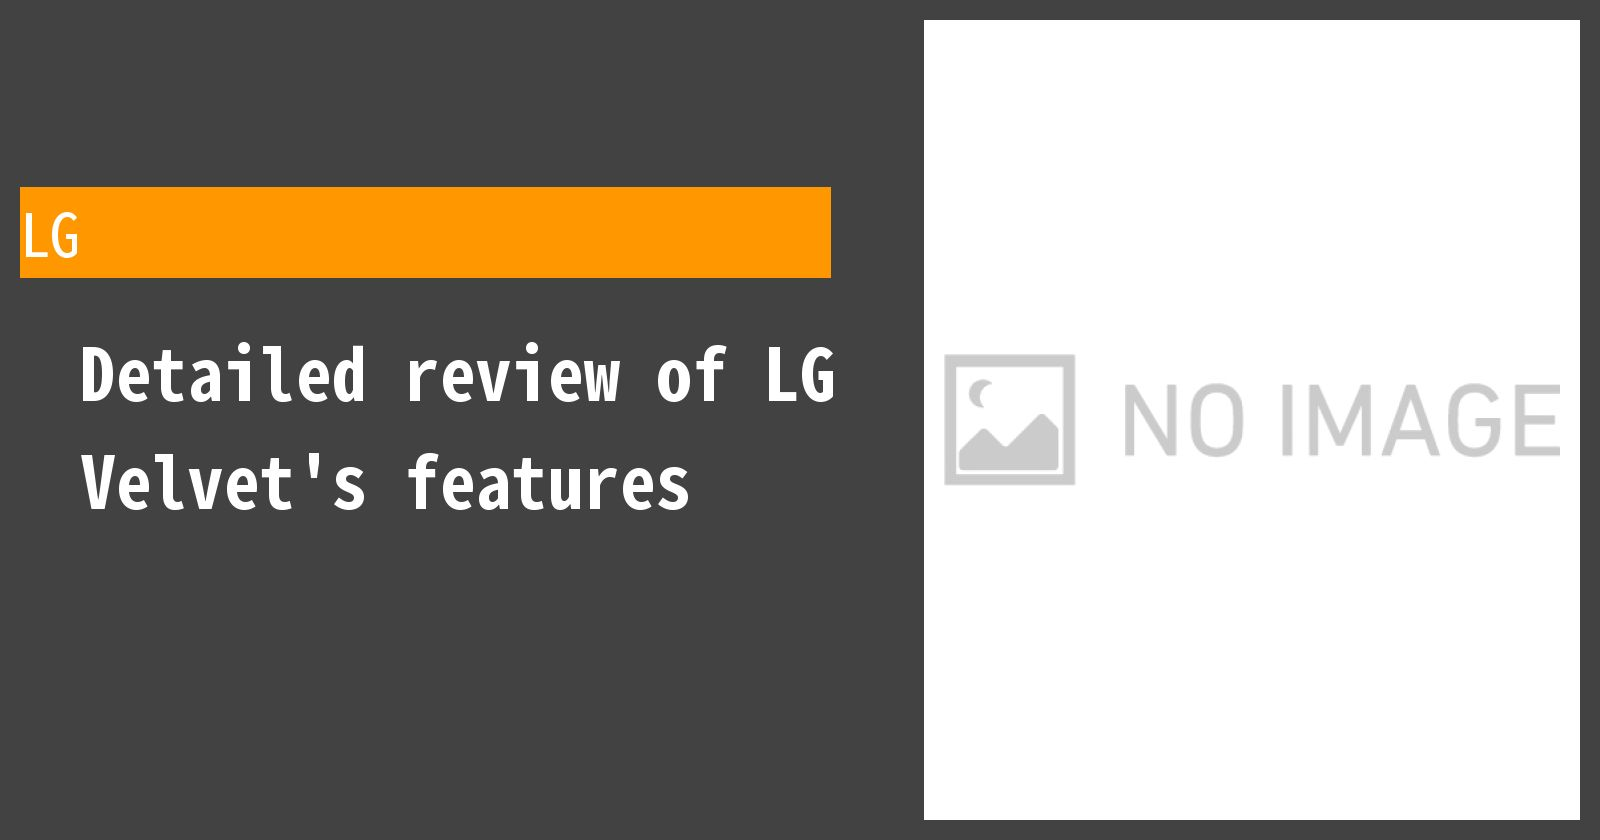 Detailed review of LG Velvet's features